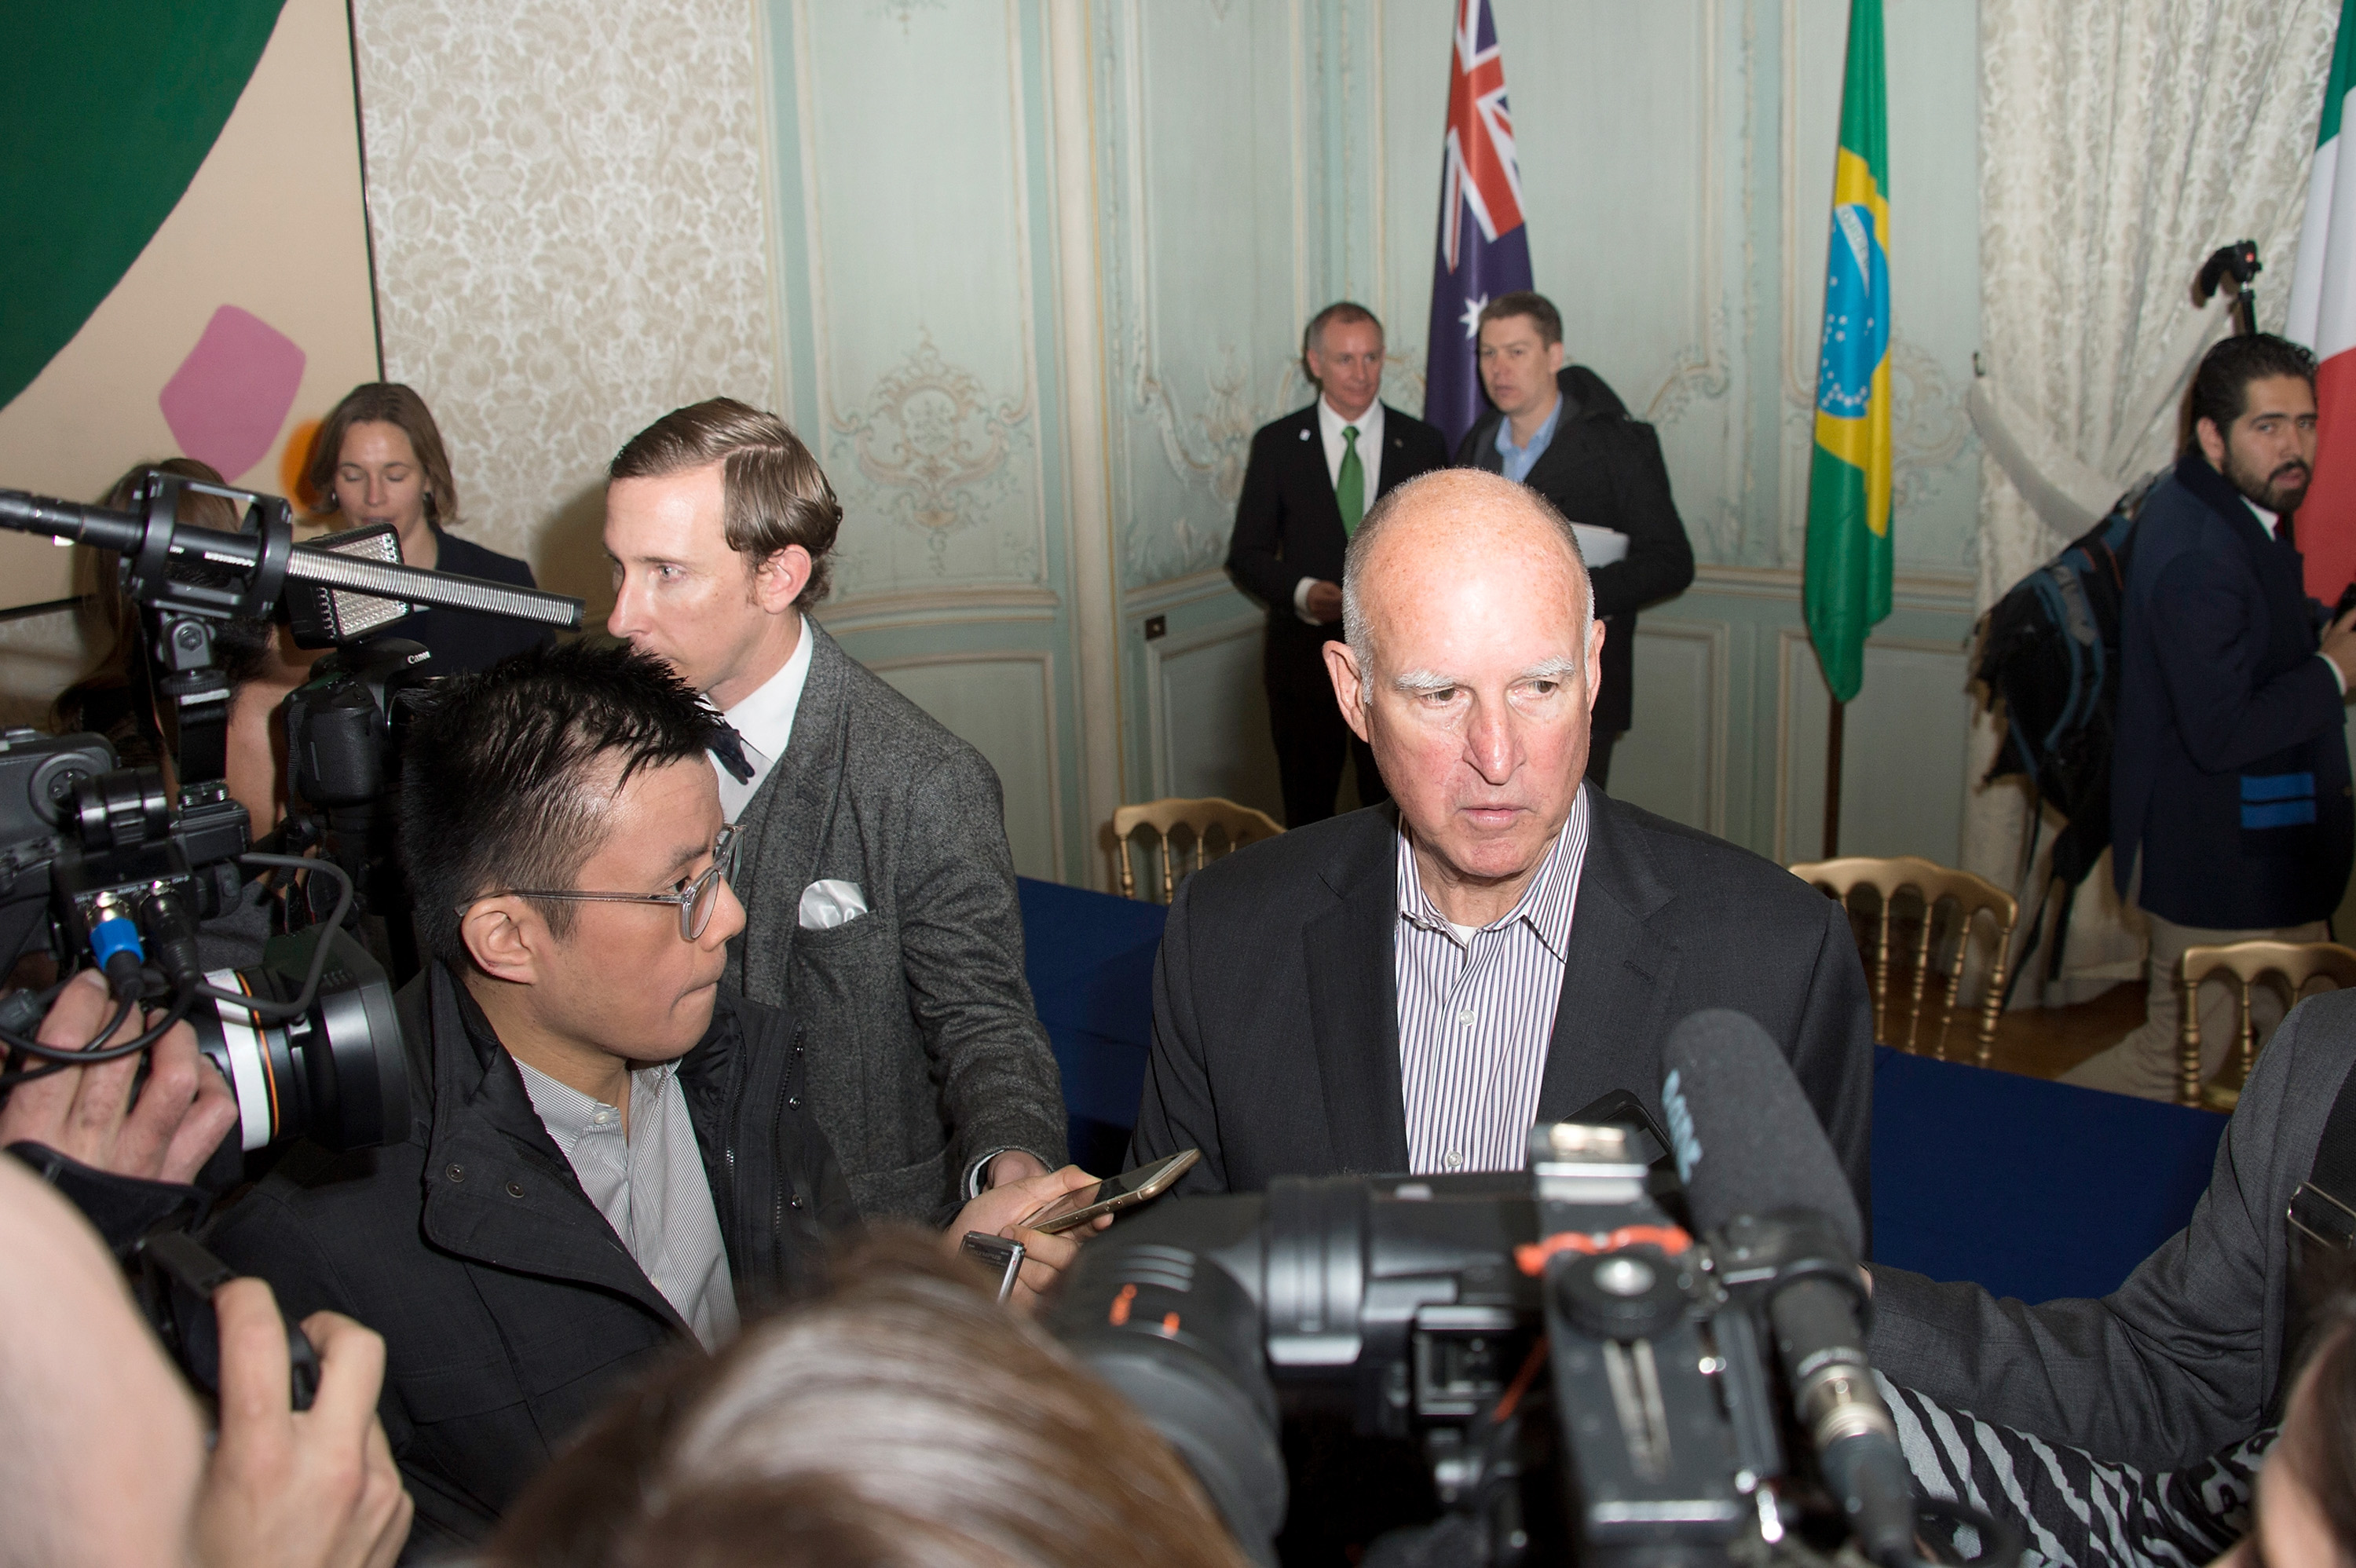 California Governor Jerry Brown speaks to the press after the signing of the memorandum on subnational global climate leadership on Dec. 6, 2015 in Paris.